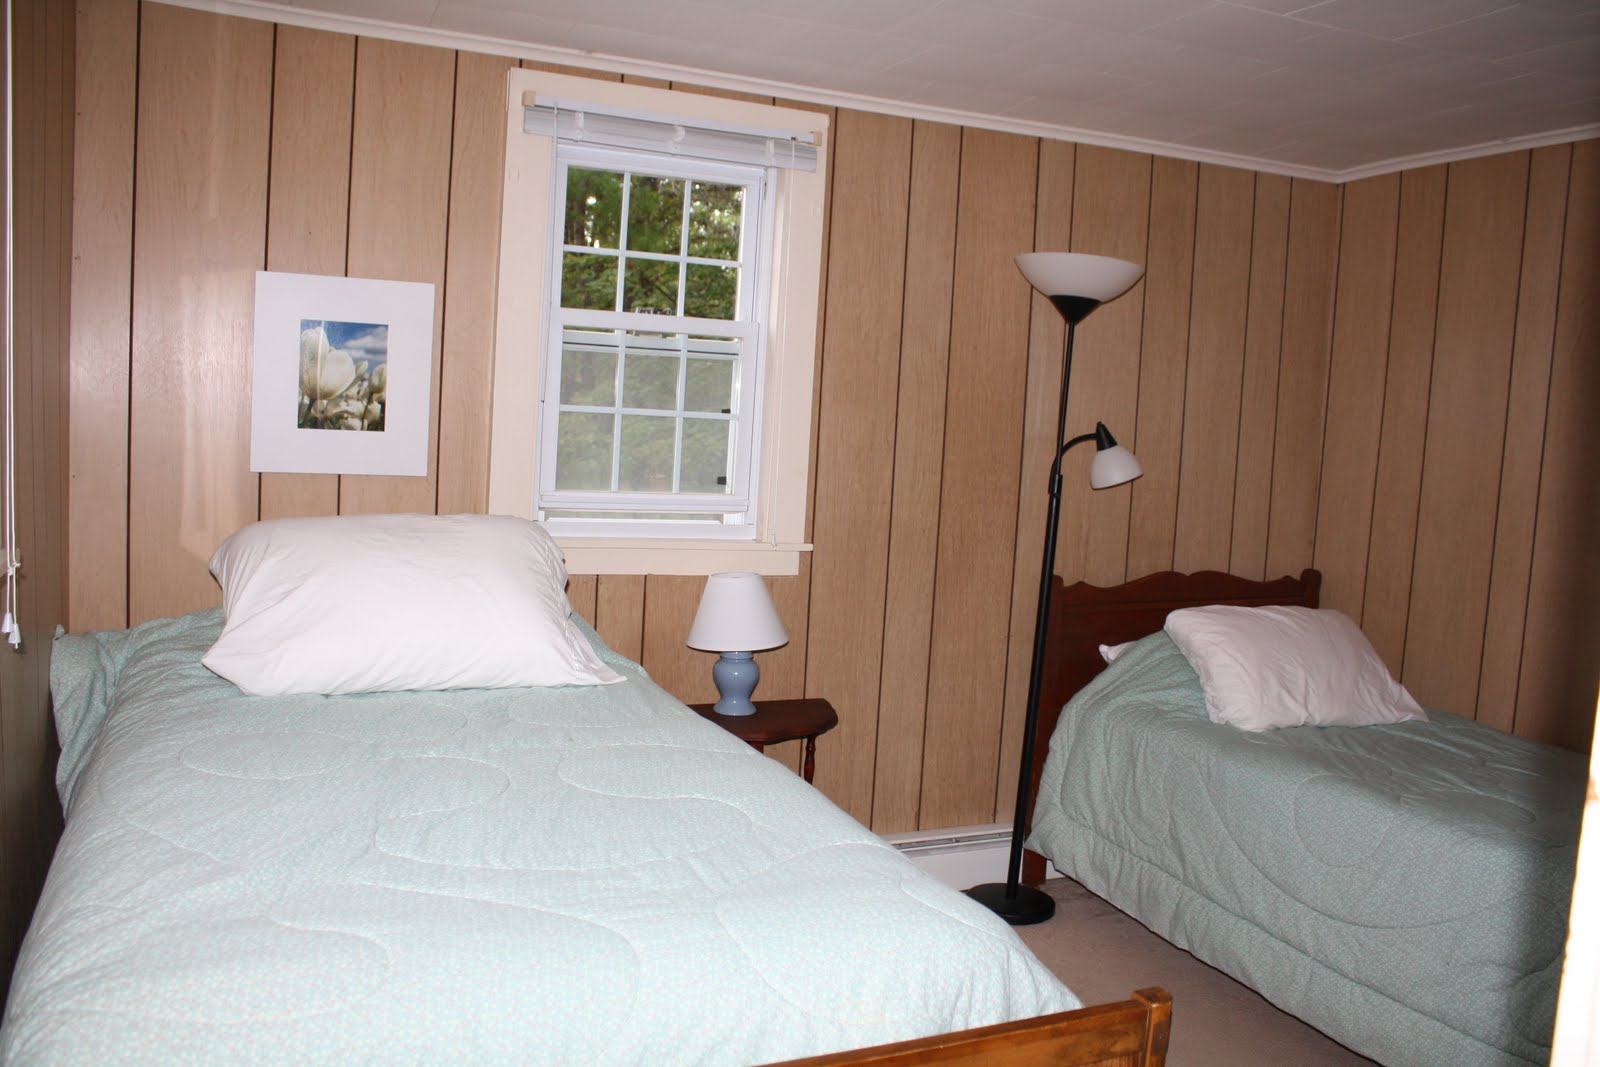 5 norwood lane goose rocks beach for 10x10 master bedroom